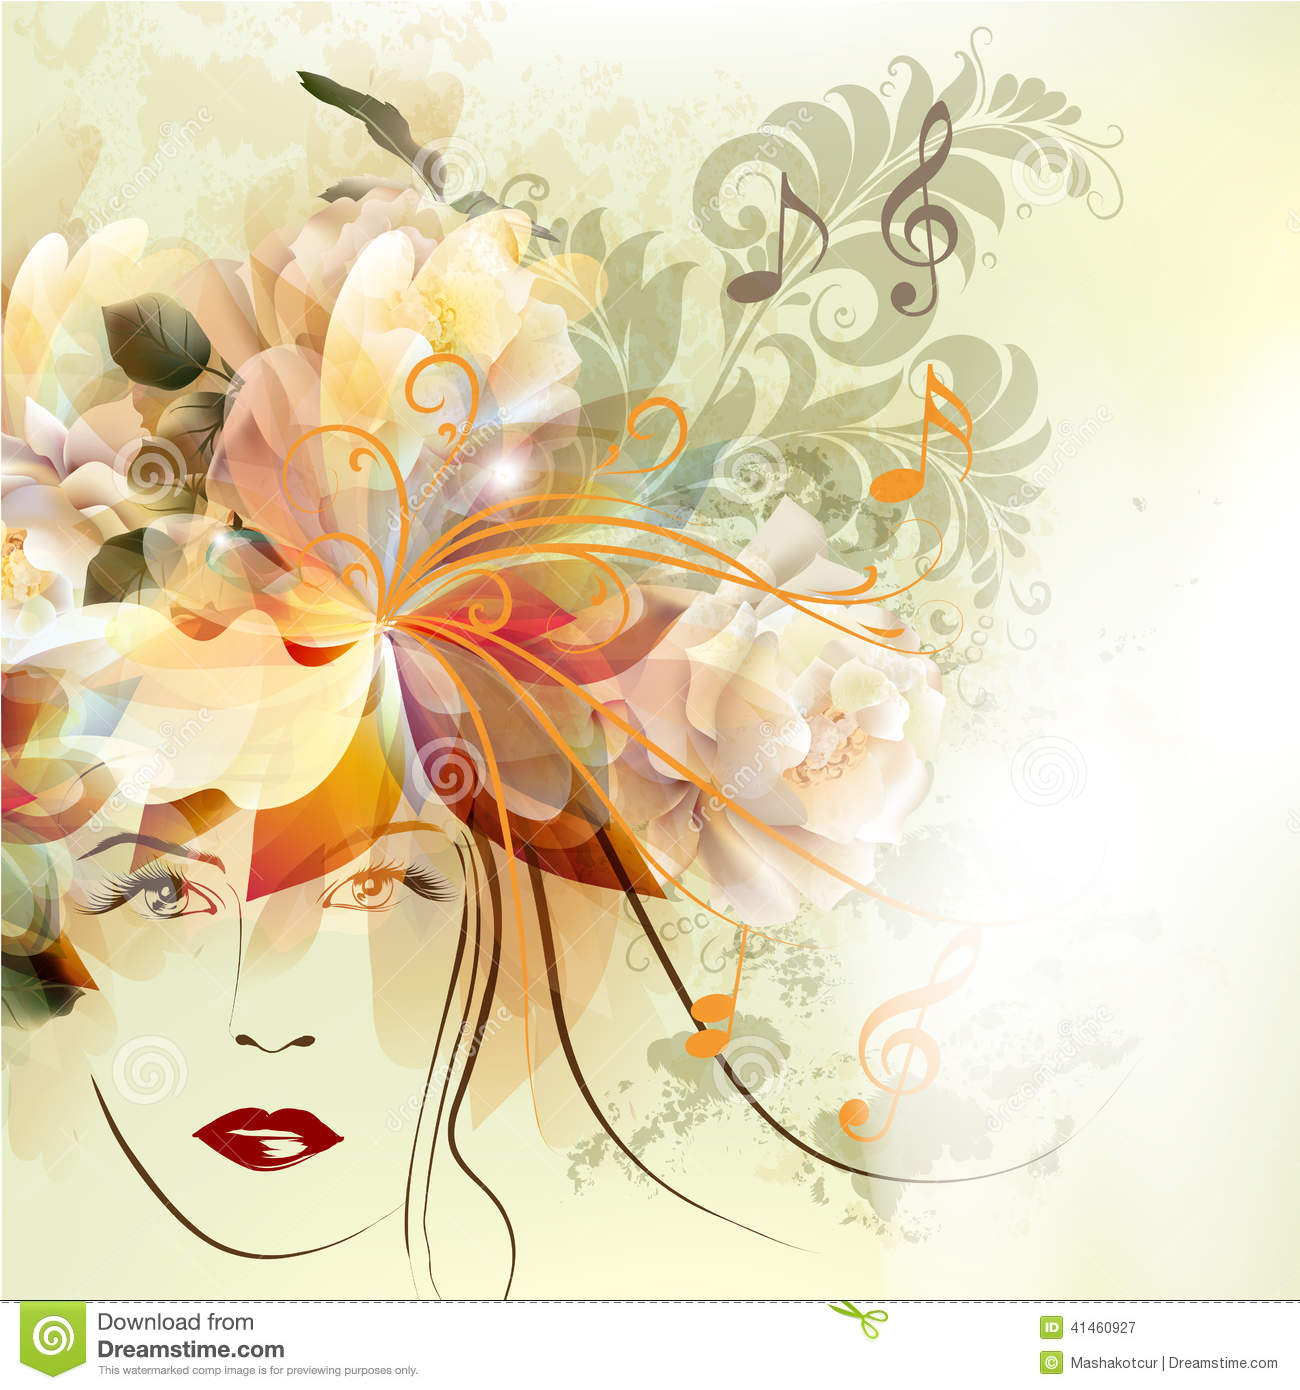 flower girl vector abstract - photo #5